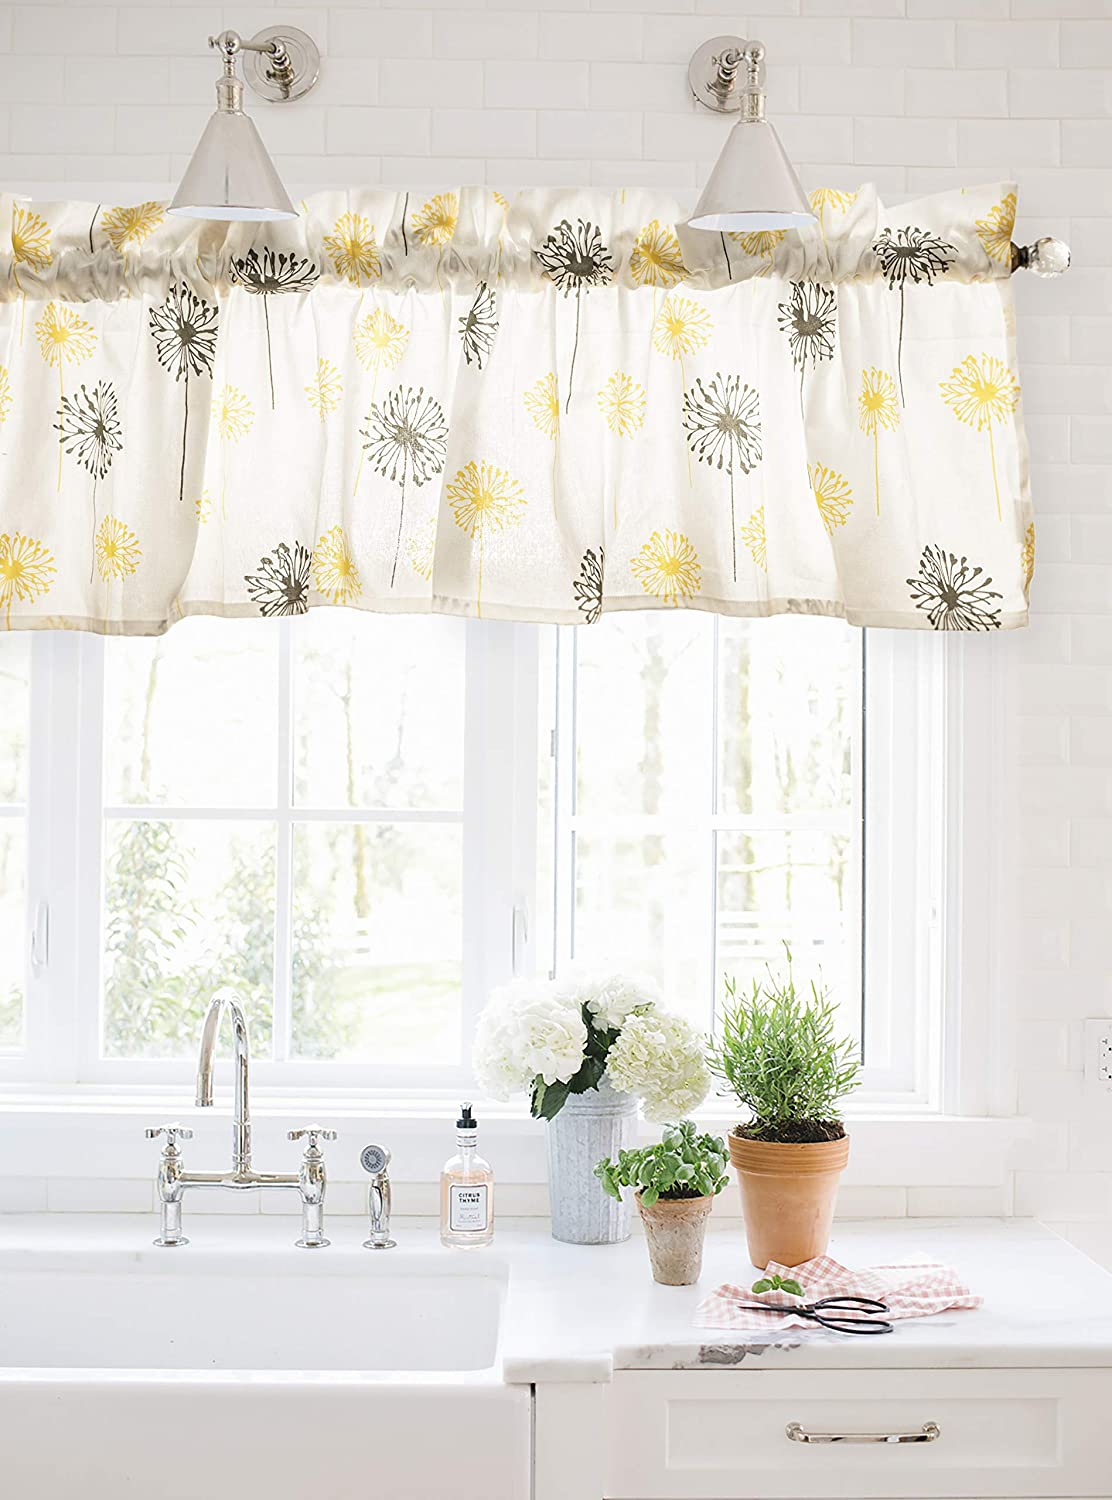 Crabtree Collection Gray Dandelion Curtain Valance for Windows (16x60)